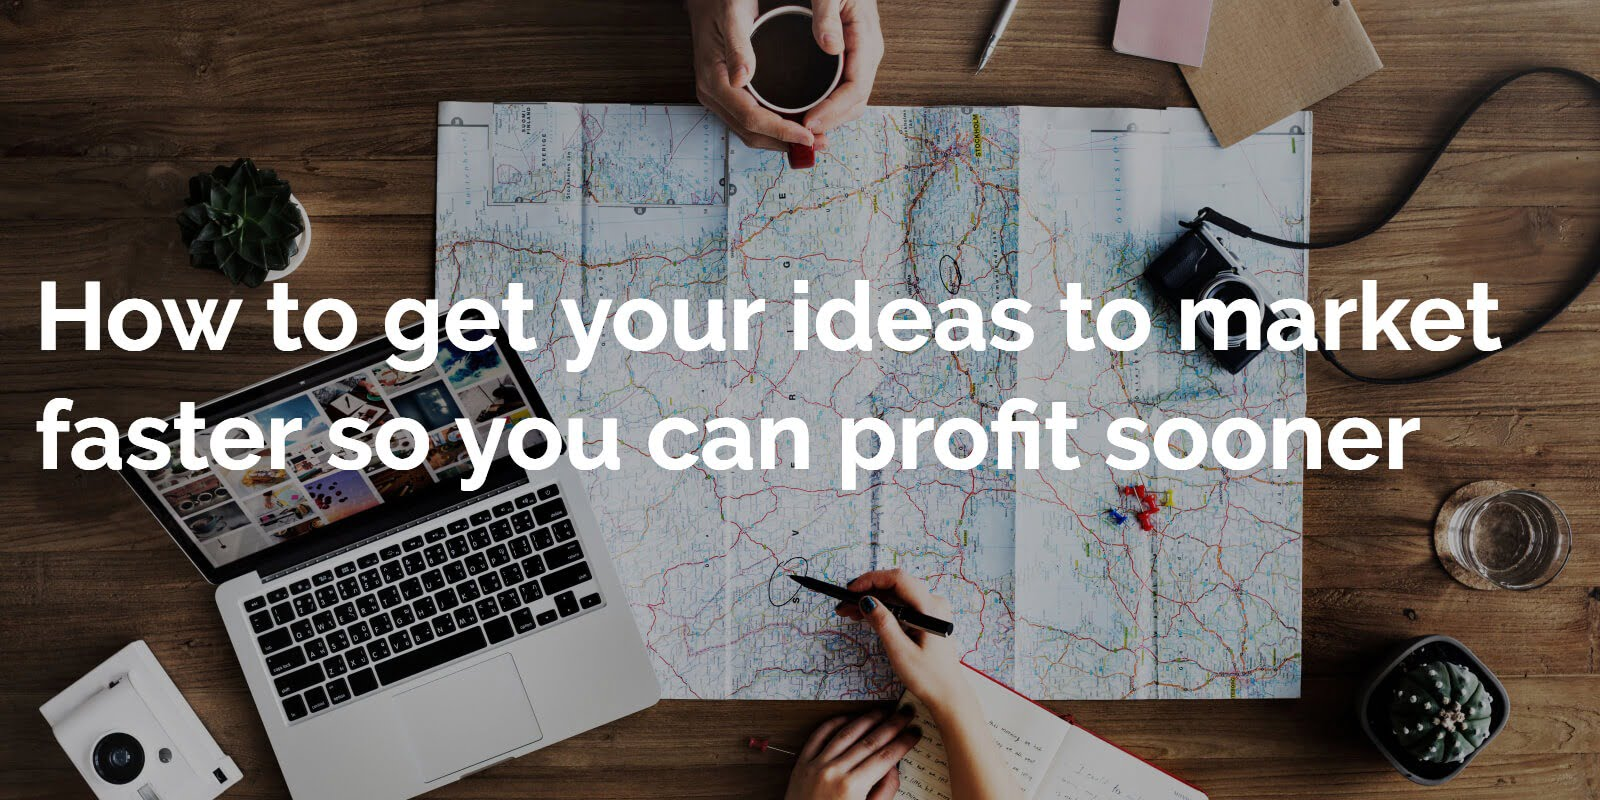 How to get your ideas to market faster so you can profit sooner